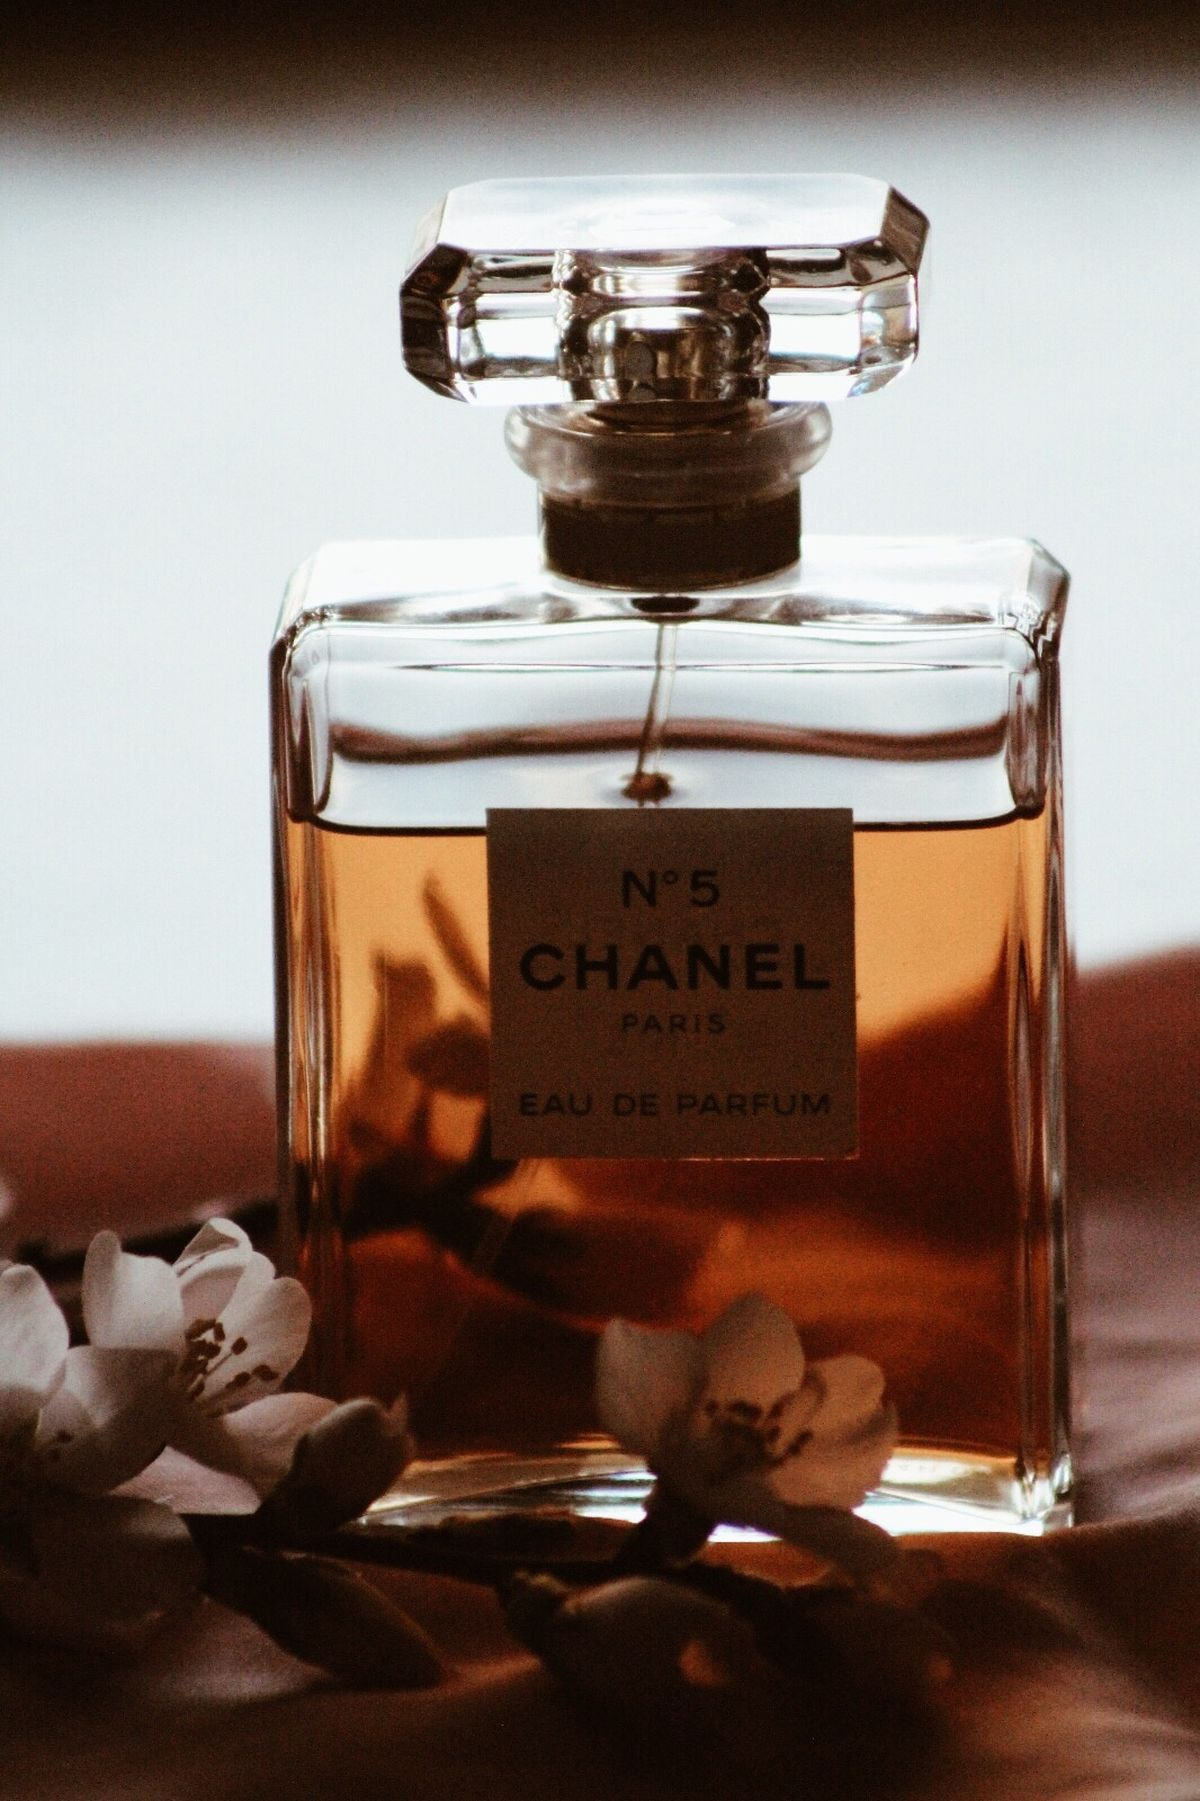 Photography EyeEmNewHere Perfume Chanel Chanel5 Paris Aisiphotography9